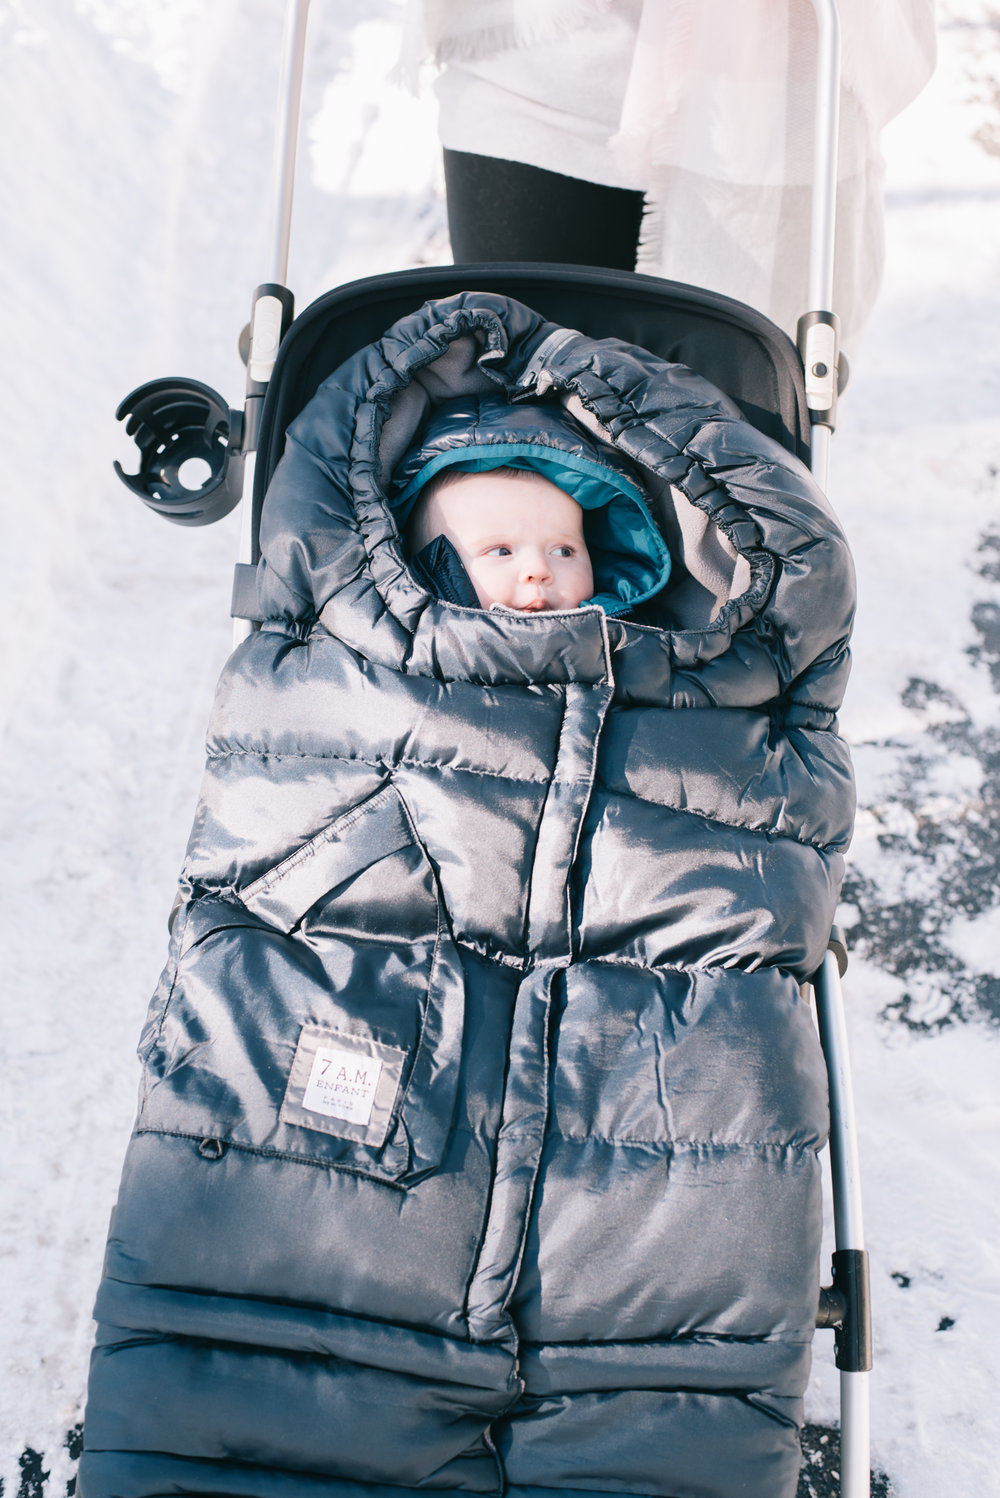 The Wind And Water Repellent Car Seat Cocoon Slips Simply Over To Keep Baby Warm While Traveling Omitting